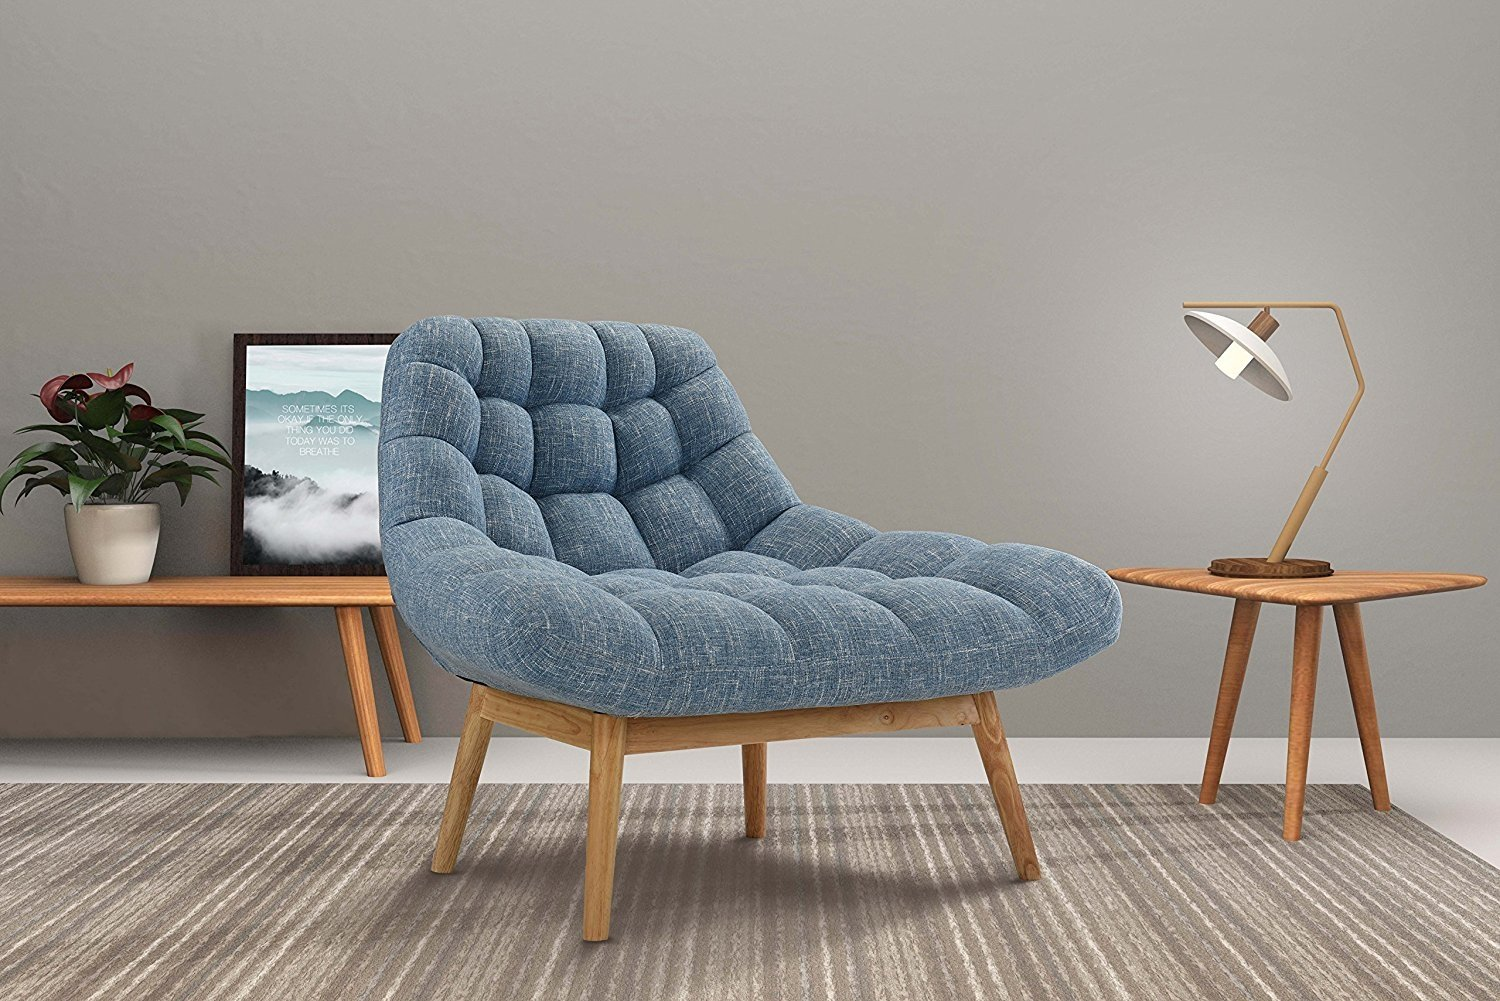 Details About Contemporary Linen Plush Living Room Lounge Accent Chair Wooden Frame Blue